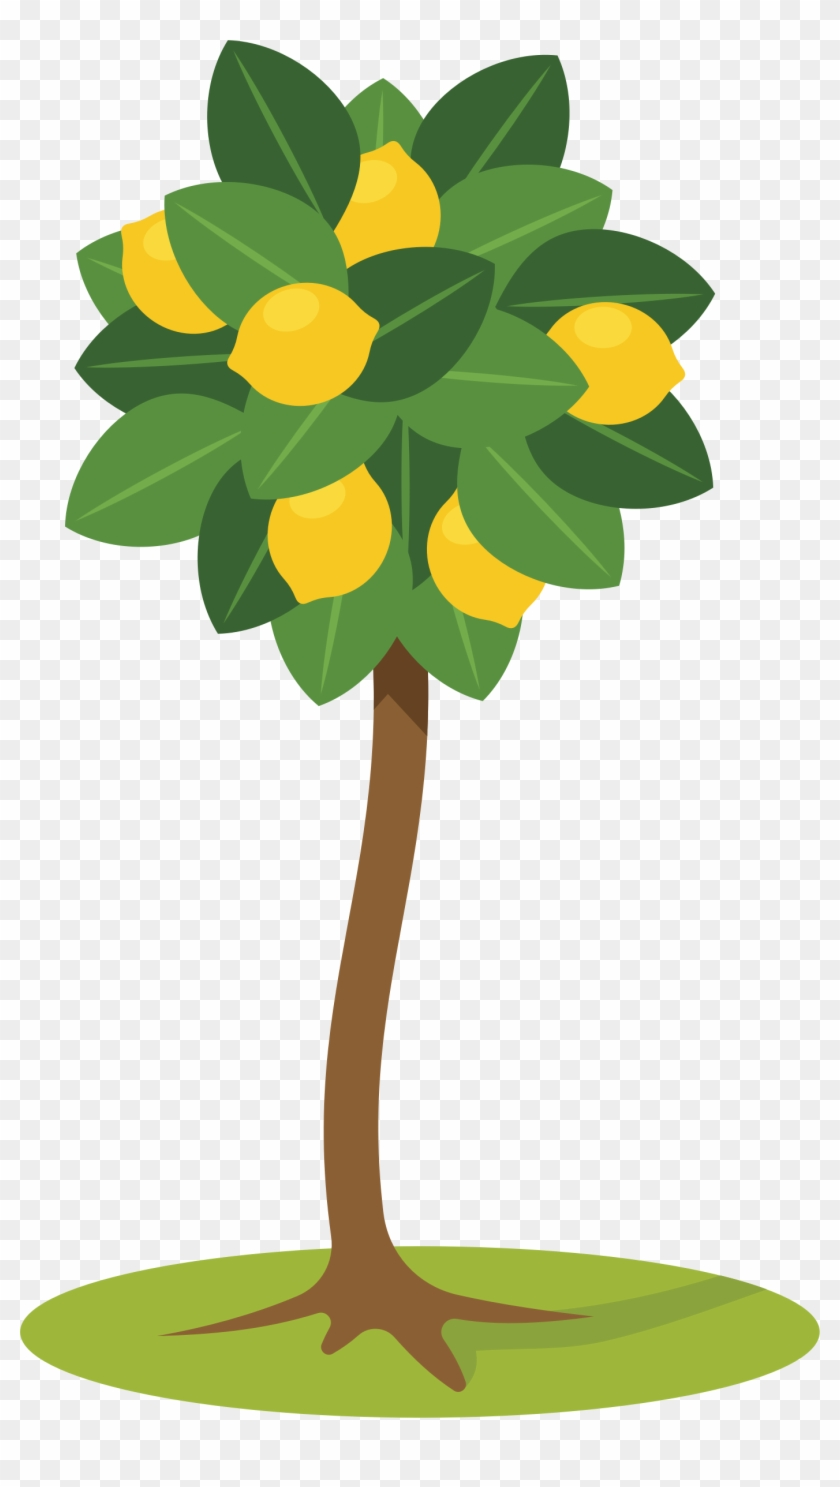 Lemon Tree Clipart - Lemon Tree Clipart #350